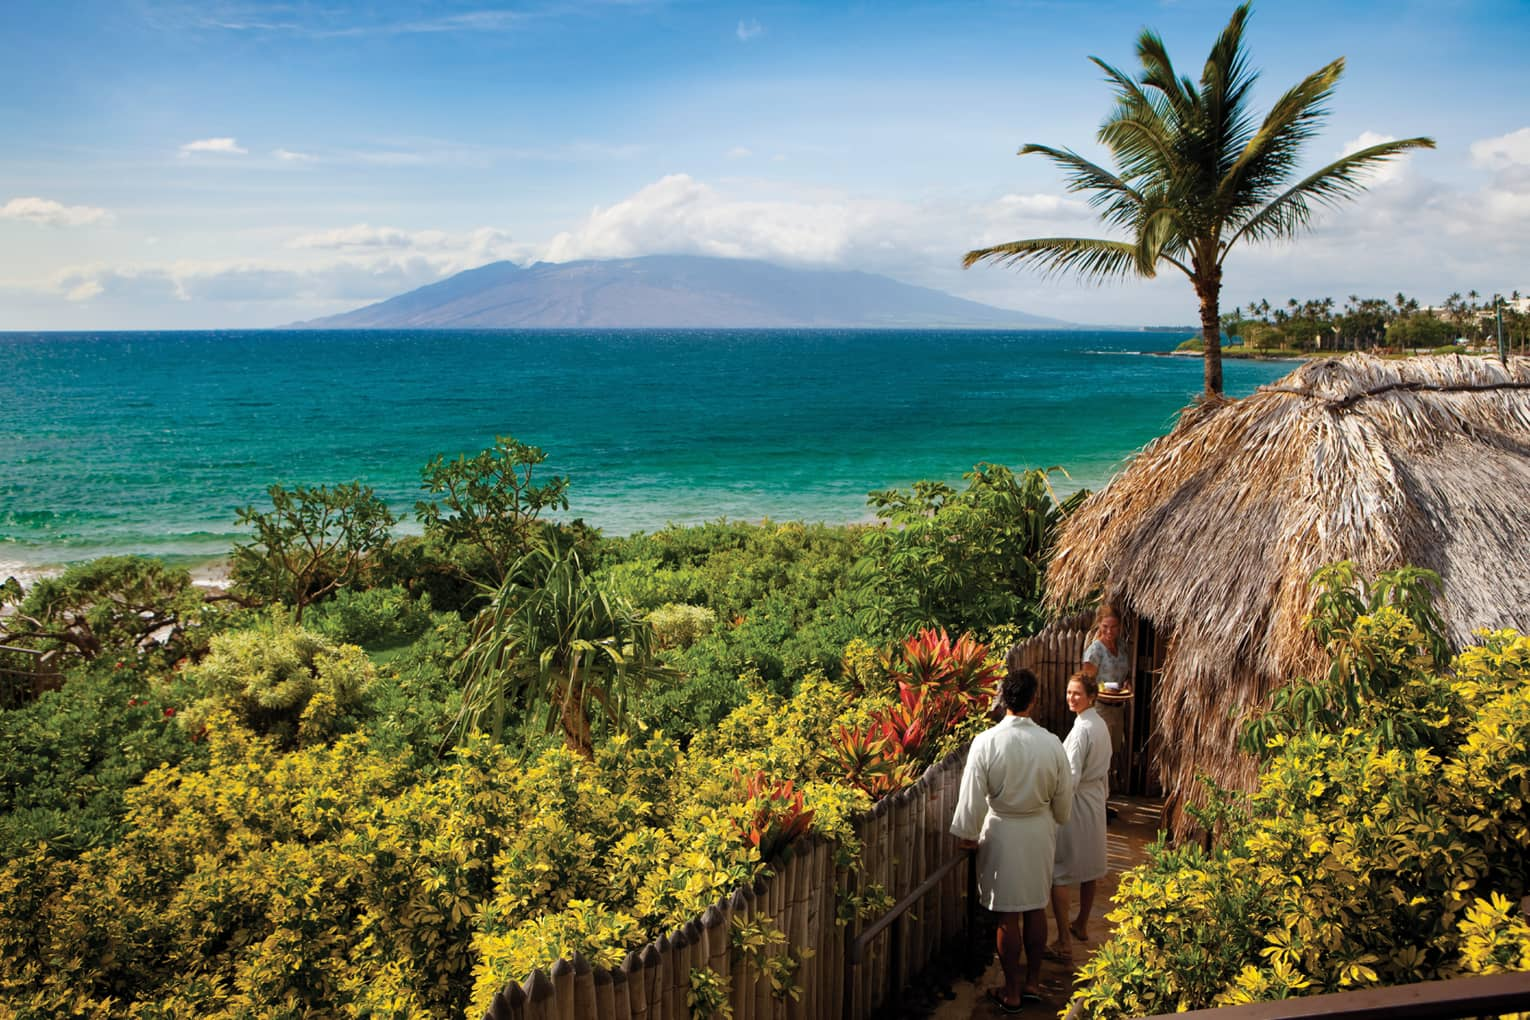 Couple in white bathrobes follow spa attendant into thatched-roof hut on path looking out at ocean